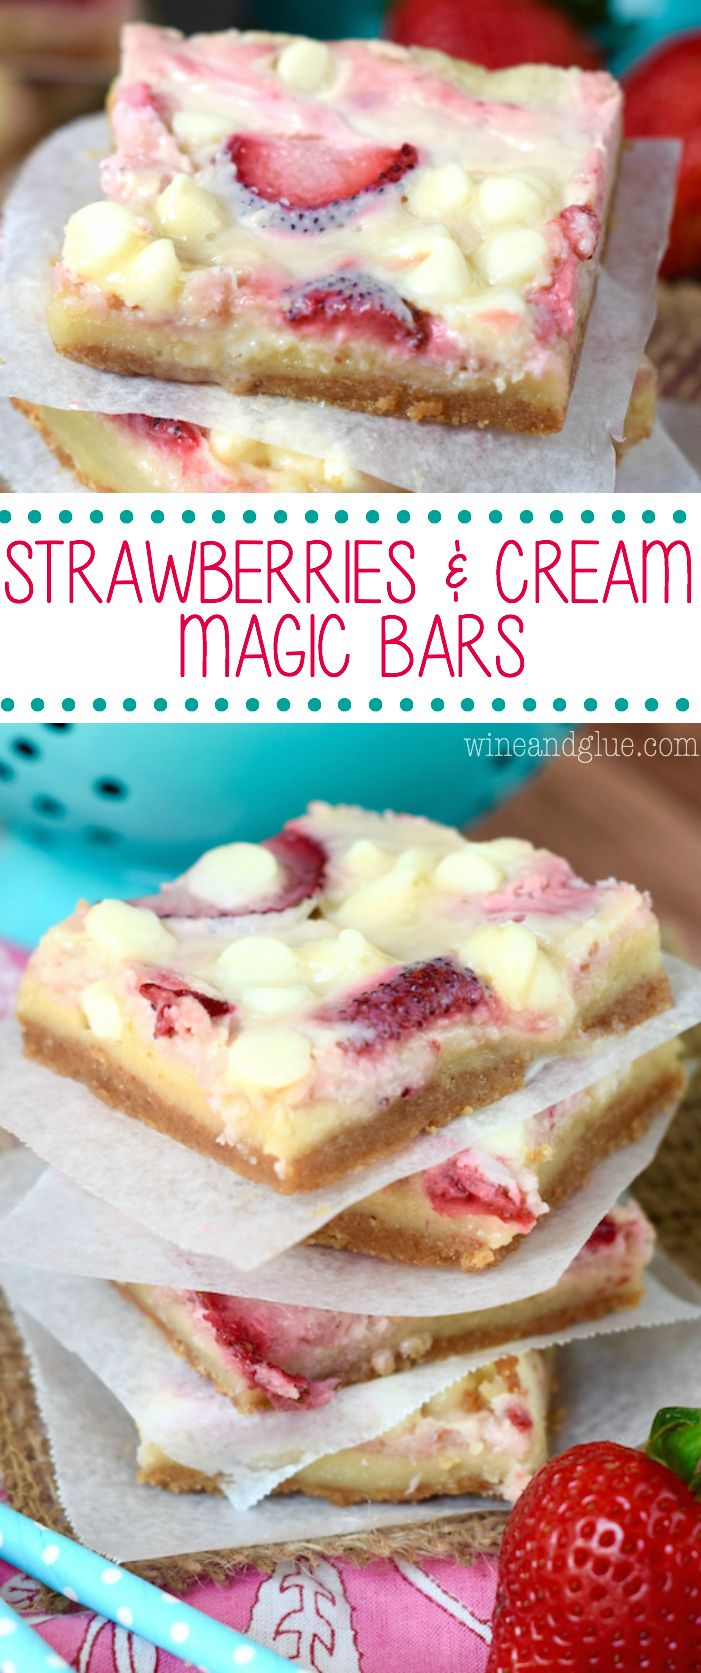 These Strawberries and Cream Magic Bars are pure magic. Made with fresh strawberries and a sugar cookie layer, they are seriously amazing!: